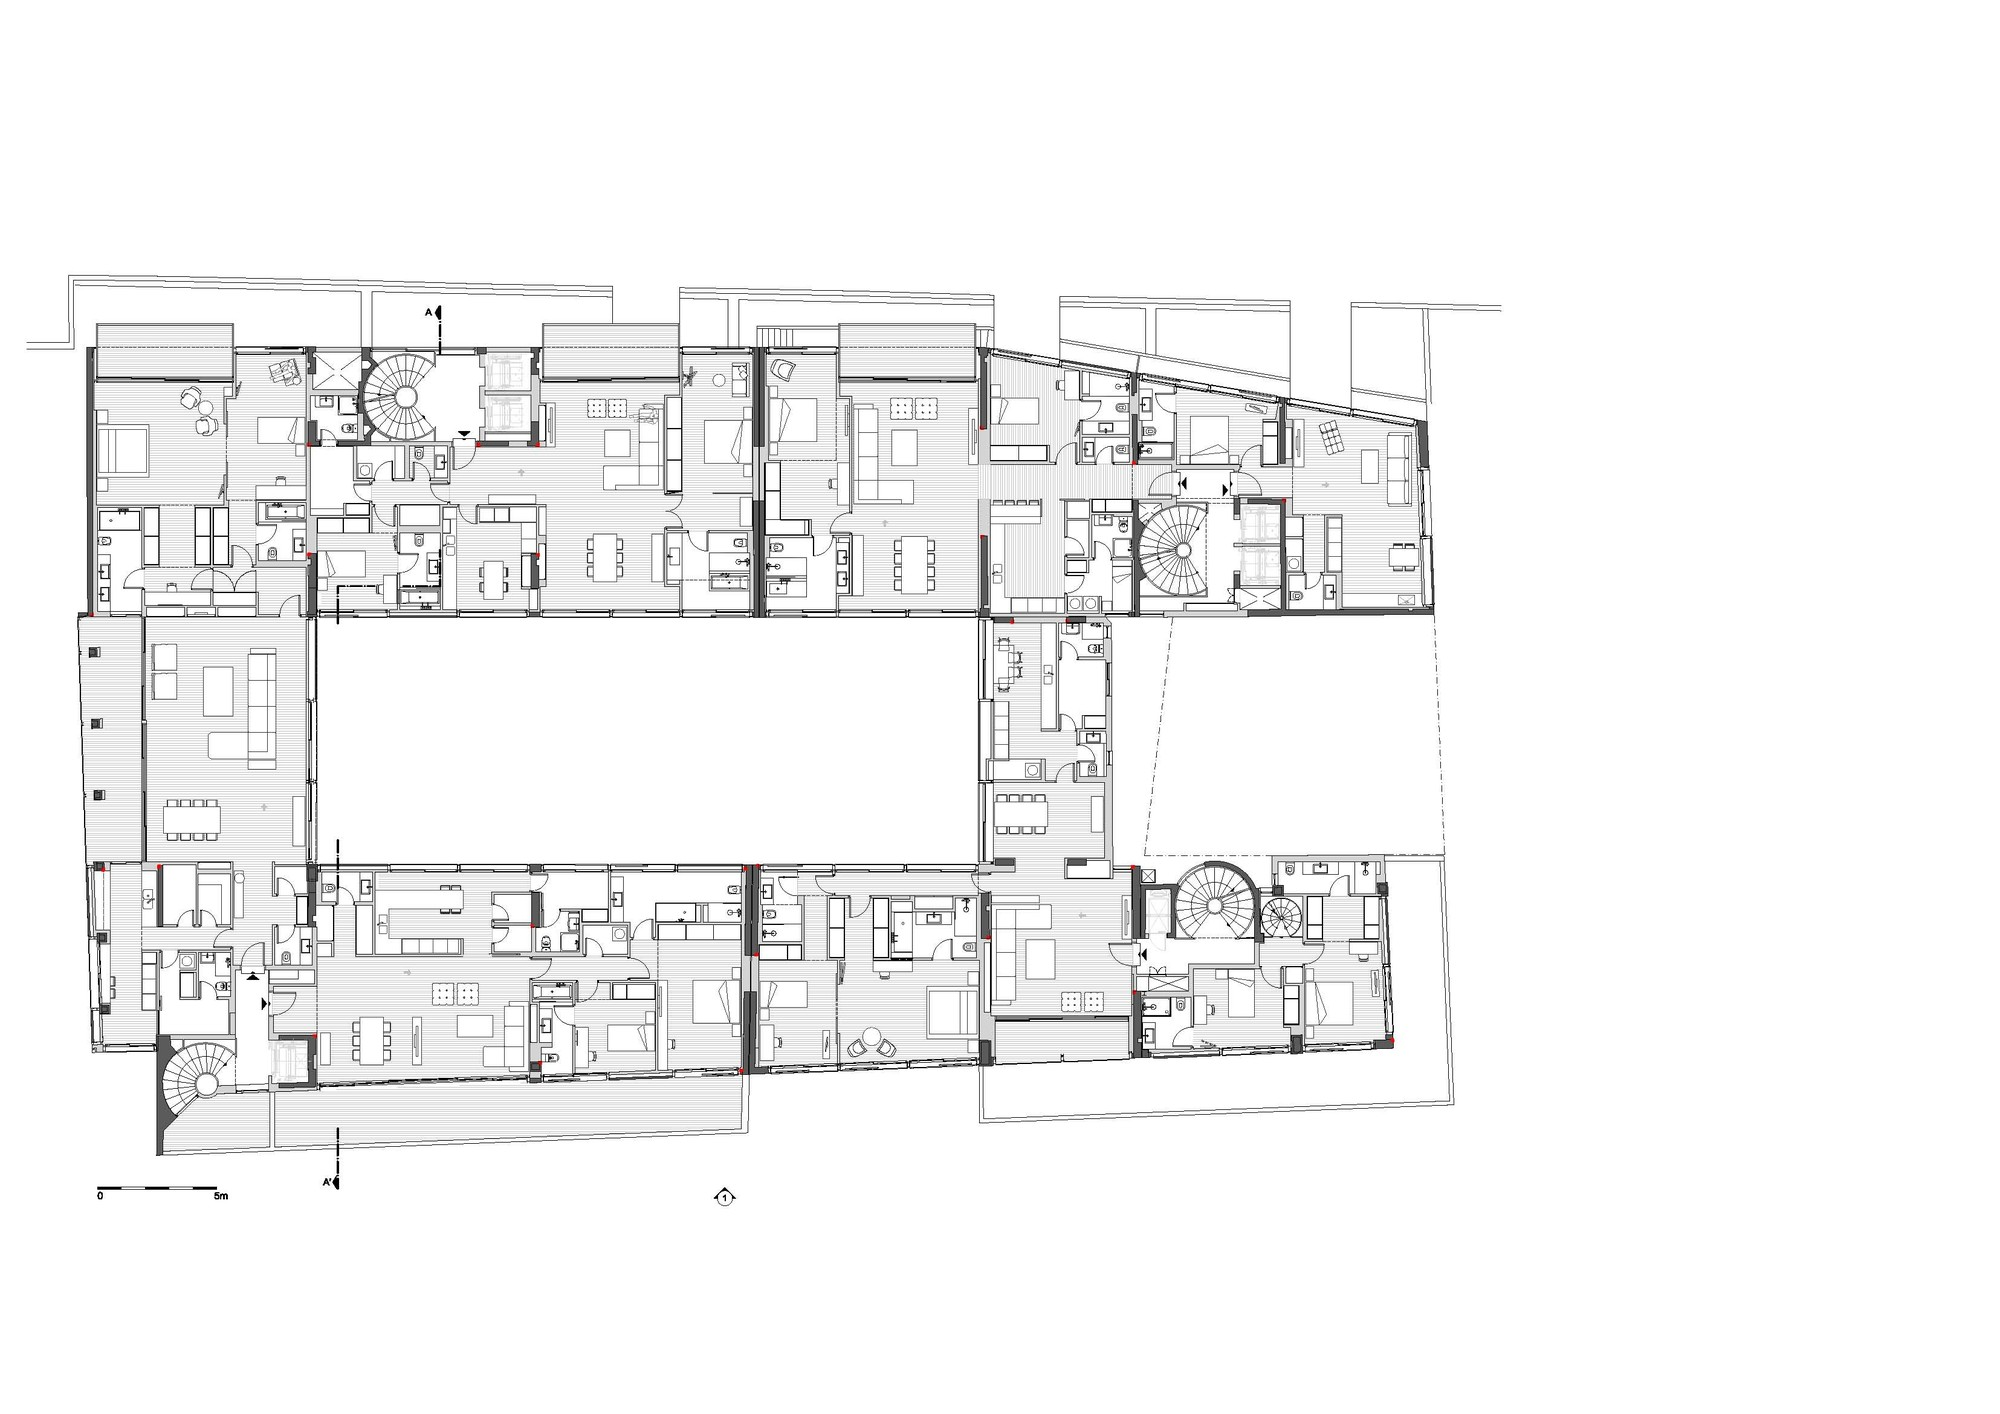 Conversion of doxiadis office building ati to apartment for Apartment building floor plans